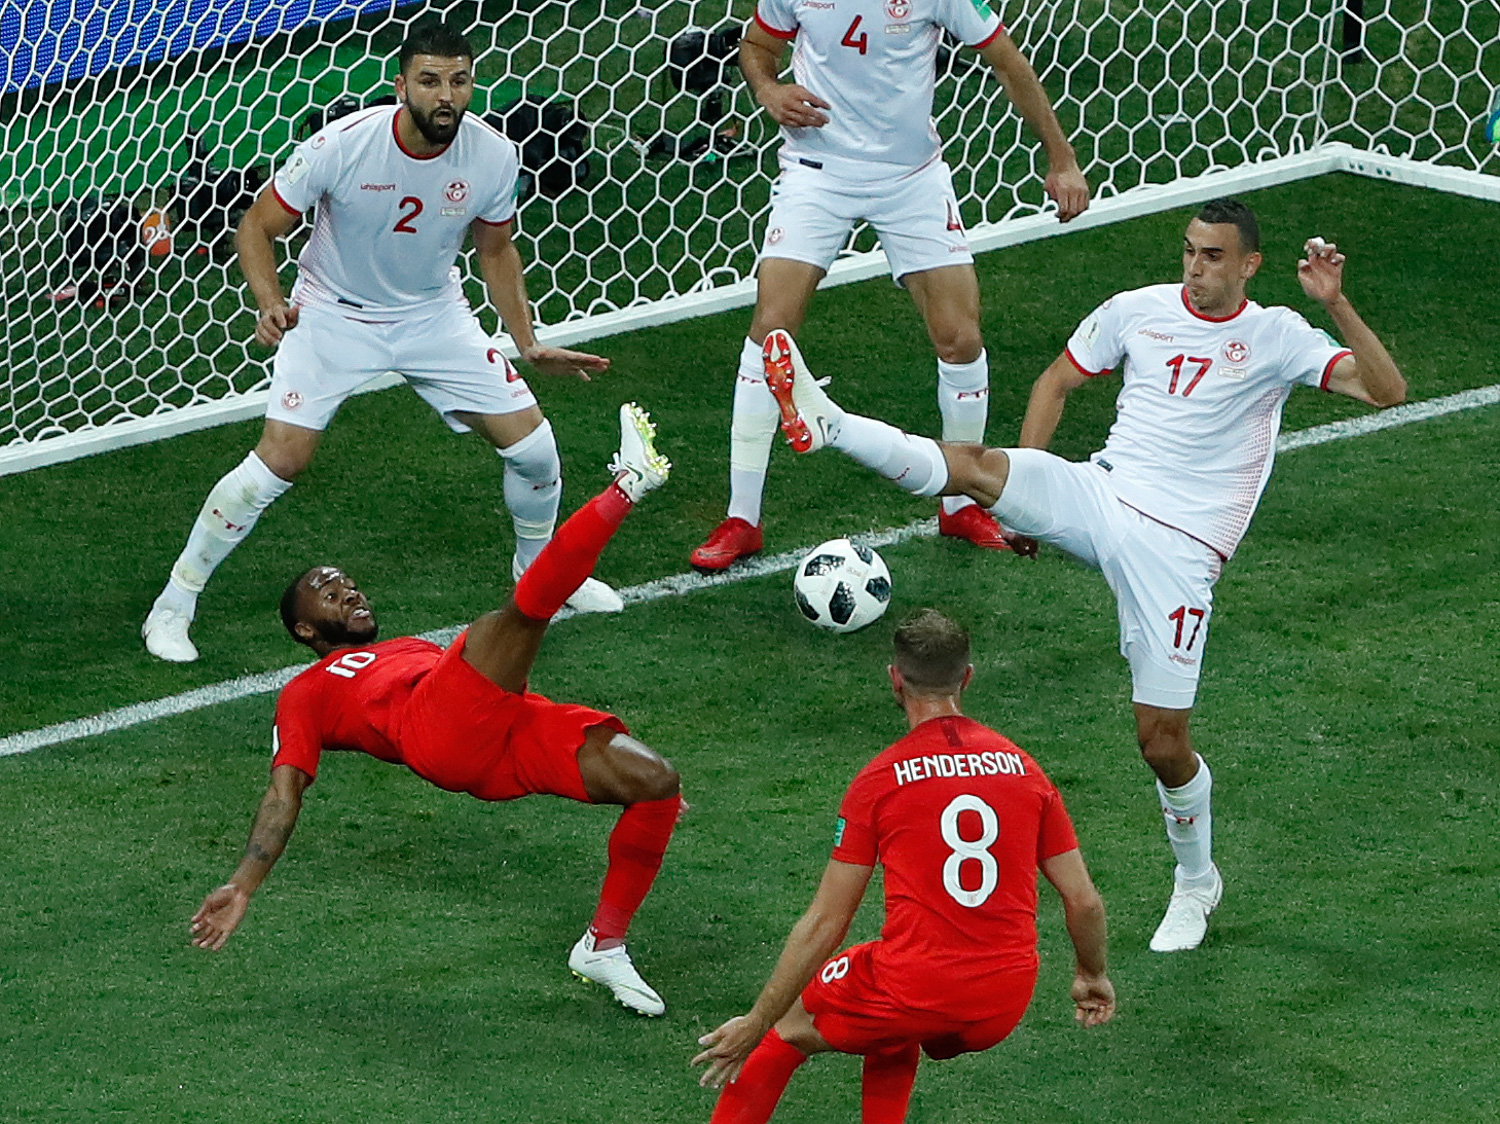 "<div class=""meta image-caption""><div class=""origin-logo origin-image none""><span>none</span></div><span class=""caption-text"">Tunisia's Ellyes Skhiri, right, and England's Raheem Sterling fight for the ball during the group G match between Tunisia and England (Rebecca Blackwell/AP Photo)</span></div>"